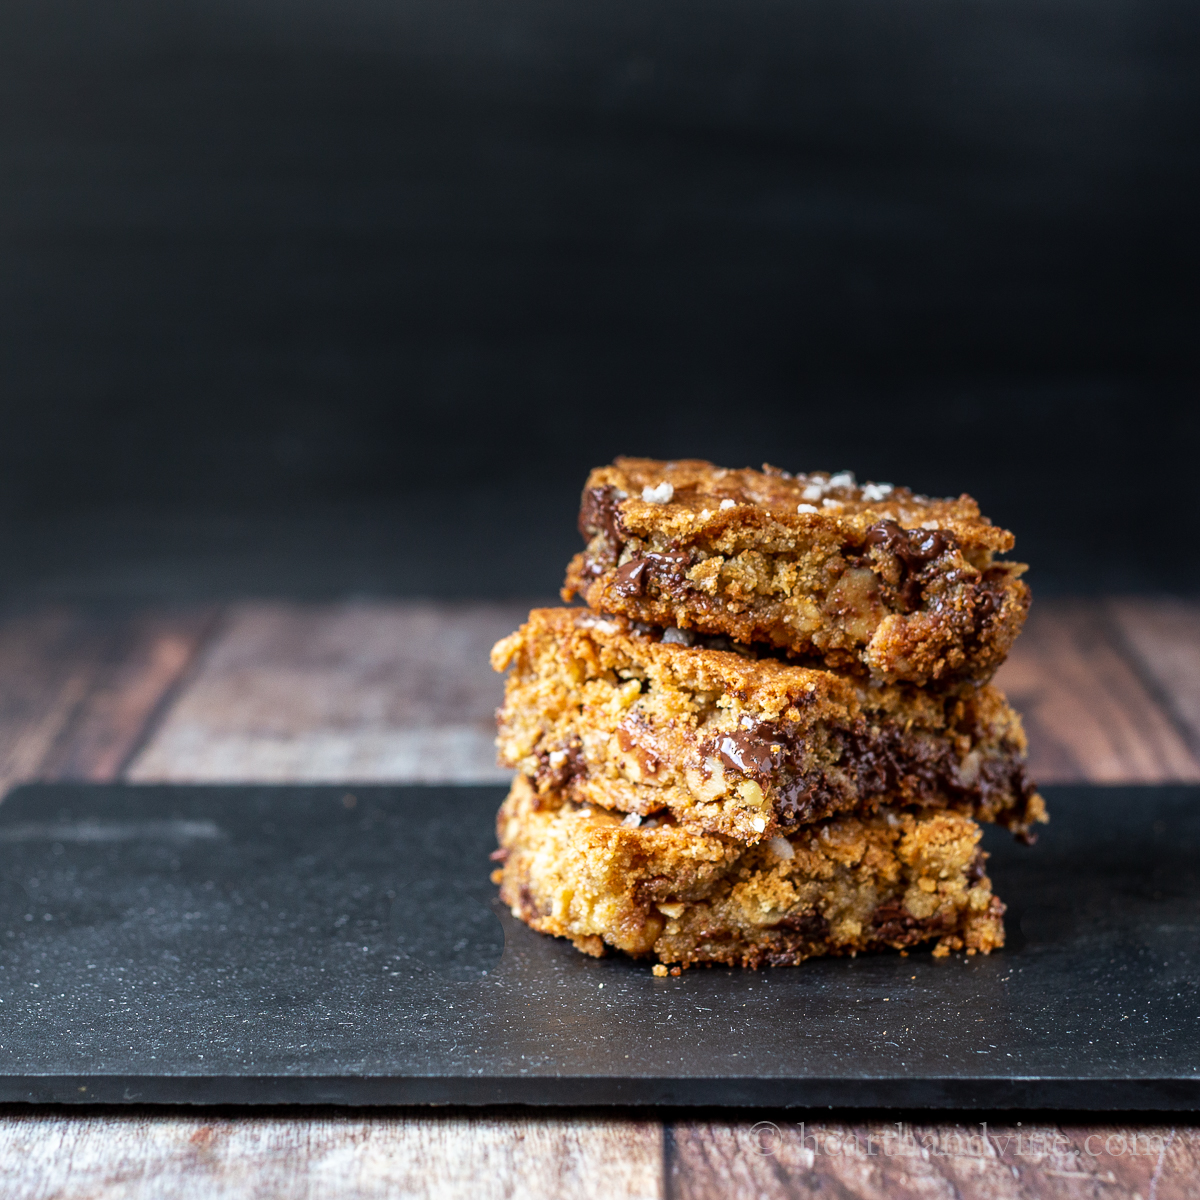 Three chocolate oatmeal bars stacked together